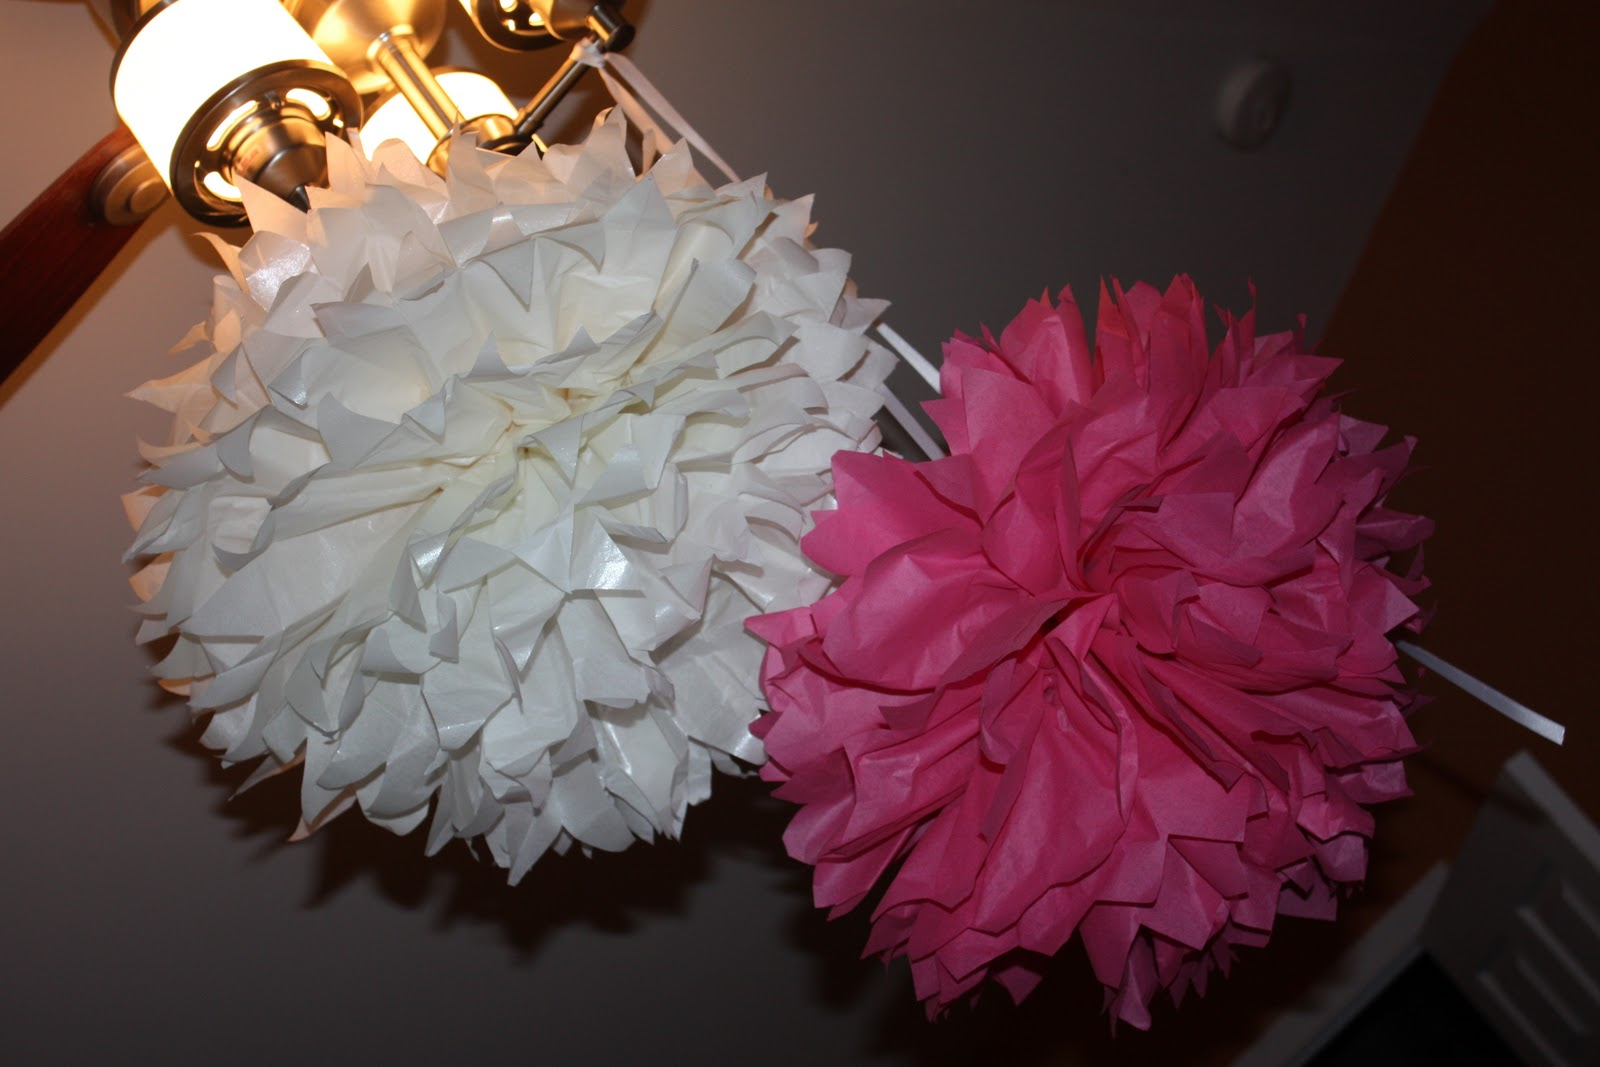 how to make hanging tissue paper balls Pomander wedding ideas 0 132 or tissue paper you might also want to consider hanging small kissing balls from a tree branch centerpiece.